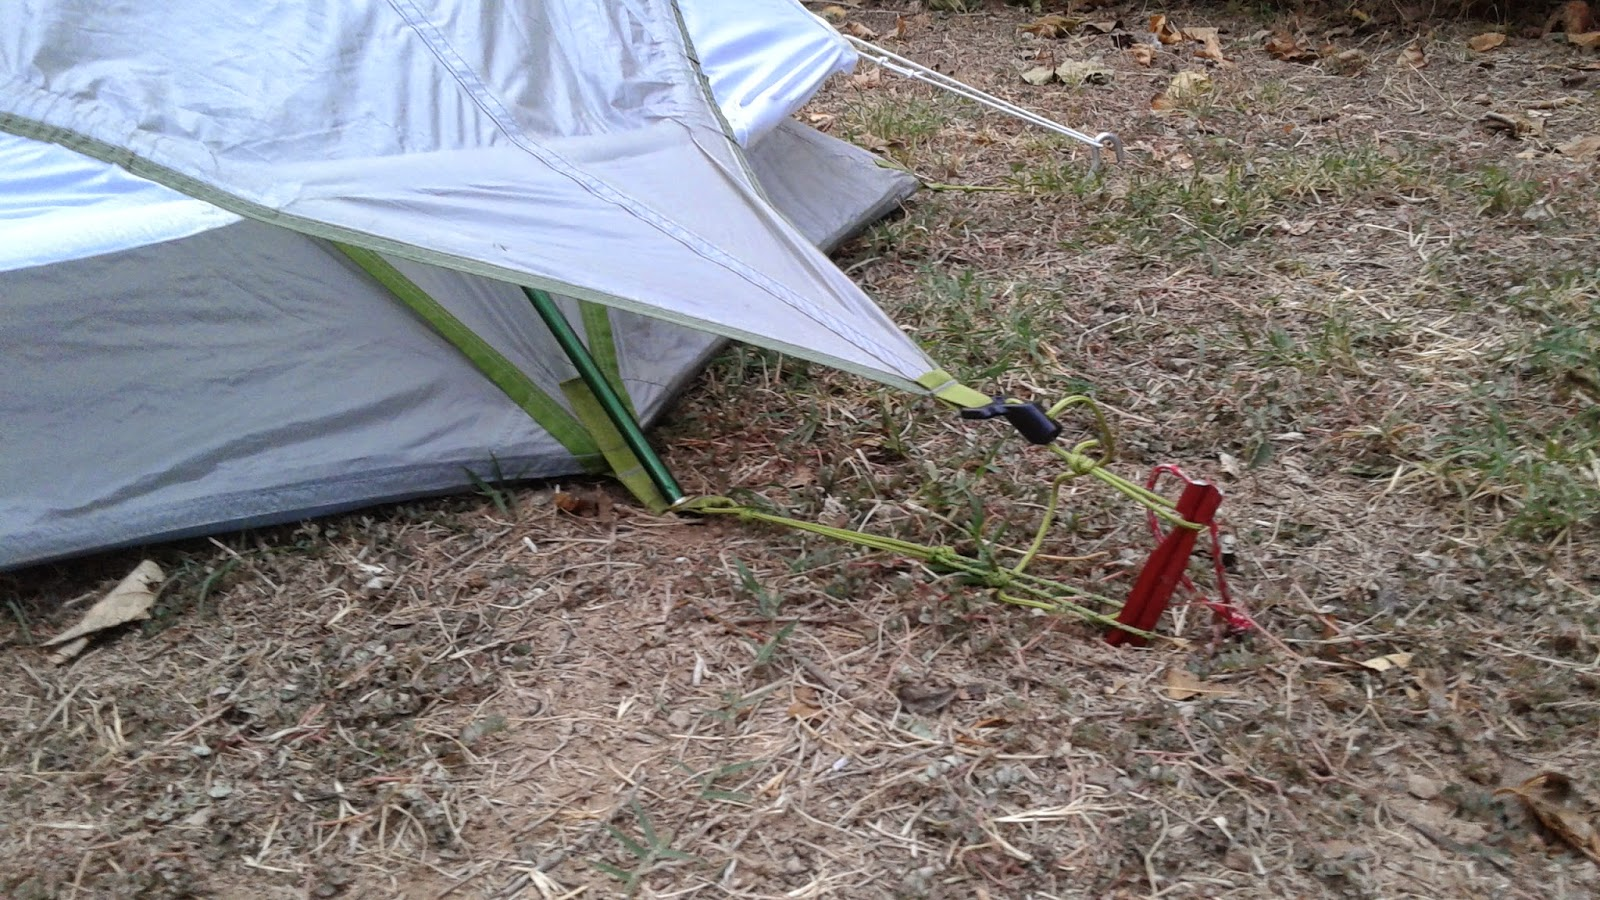 Rear stake. Extend tent guy line. & Packman - Raised by Raccoons: REI DASH 2 TENT REVIEW u0026 MODIFICATION